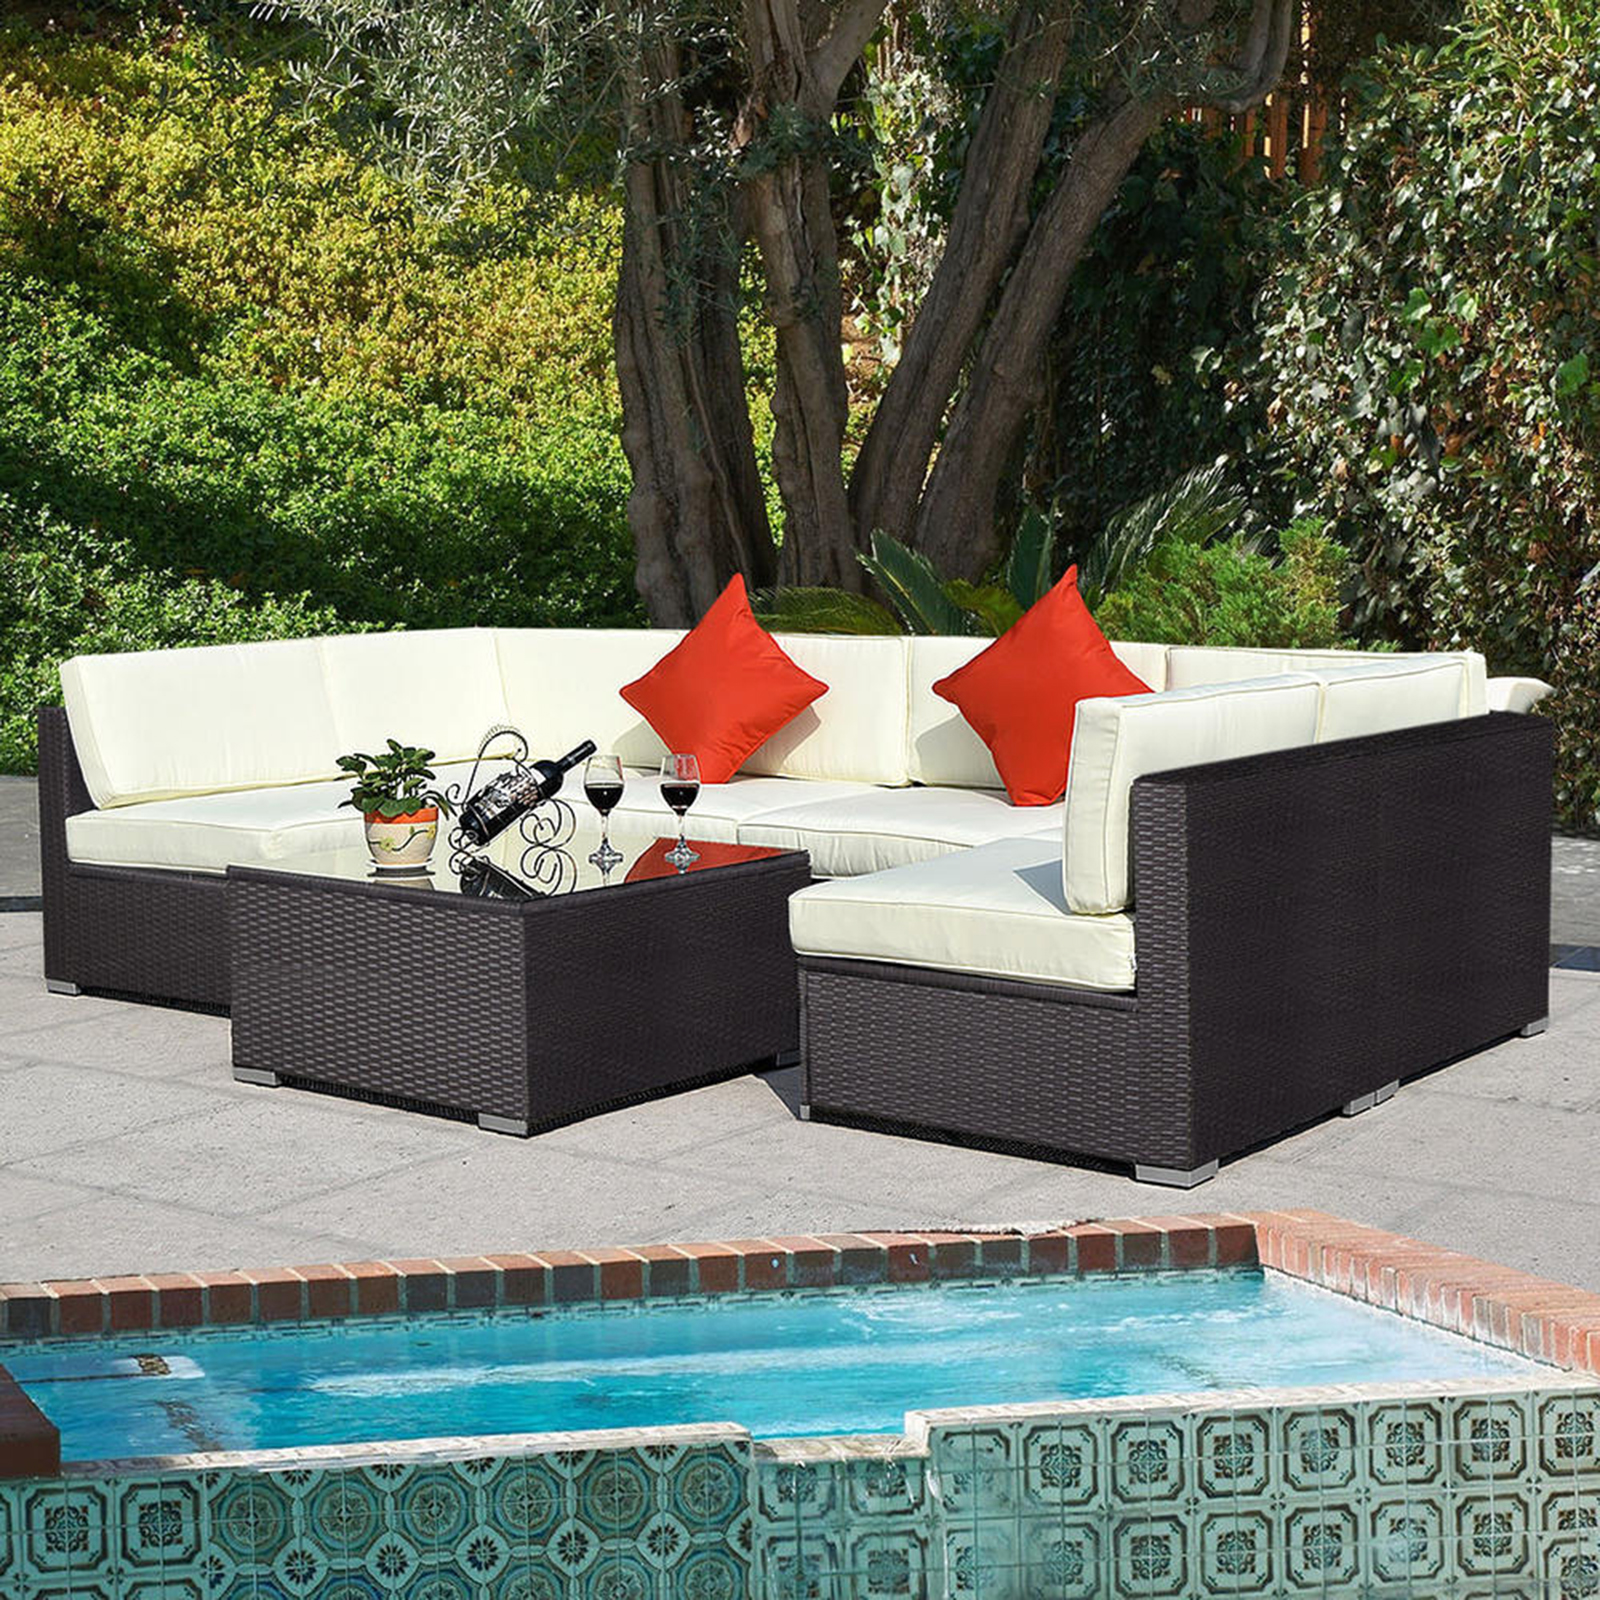 garden sofas goplus outdoor 7pc furniture sectional pe wicker patio rattan sofa set ABZBSUM